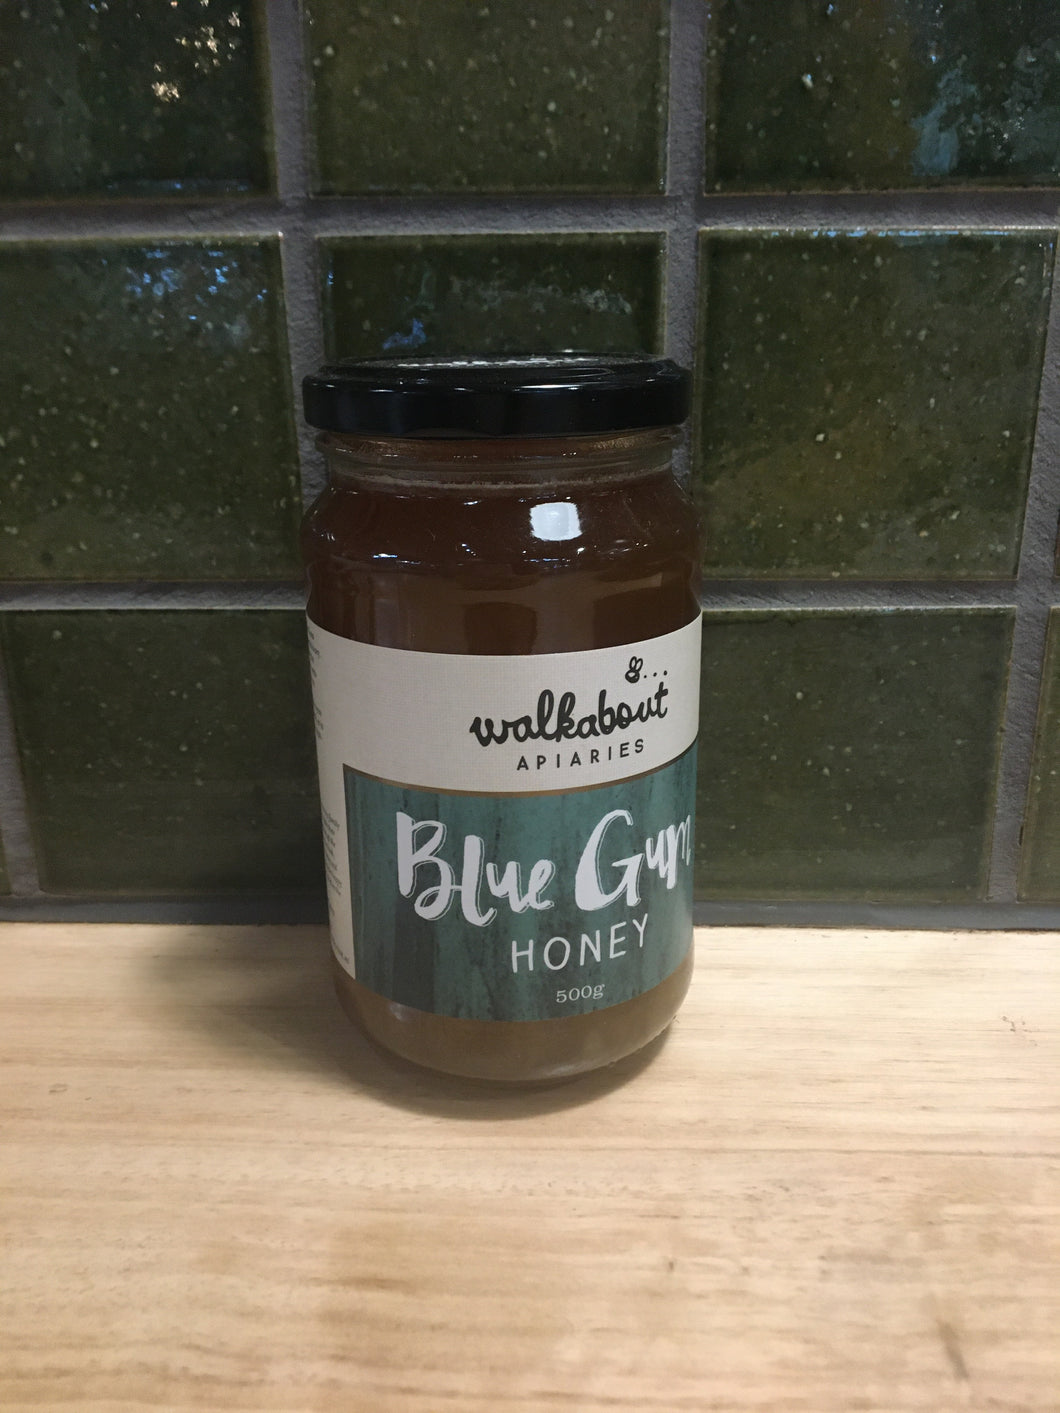 Walkabout Apiaries - Blue Gum 500g